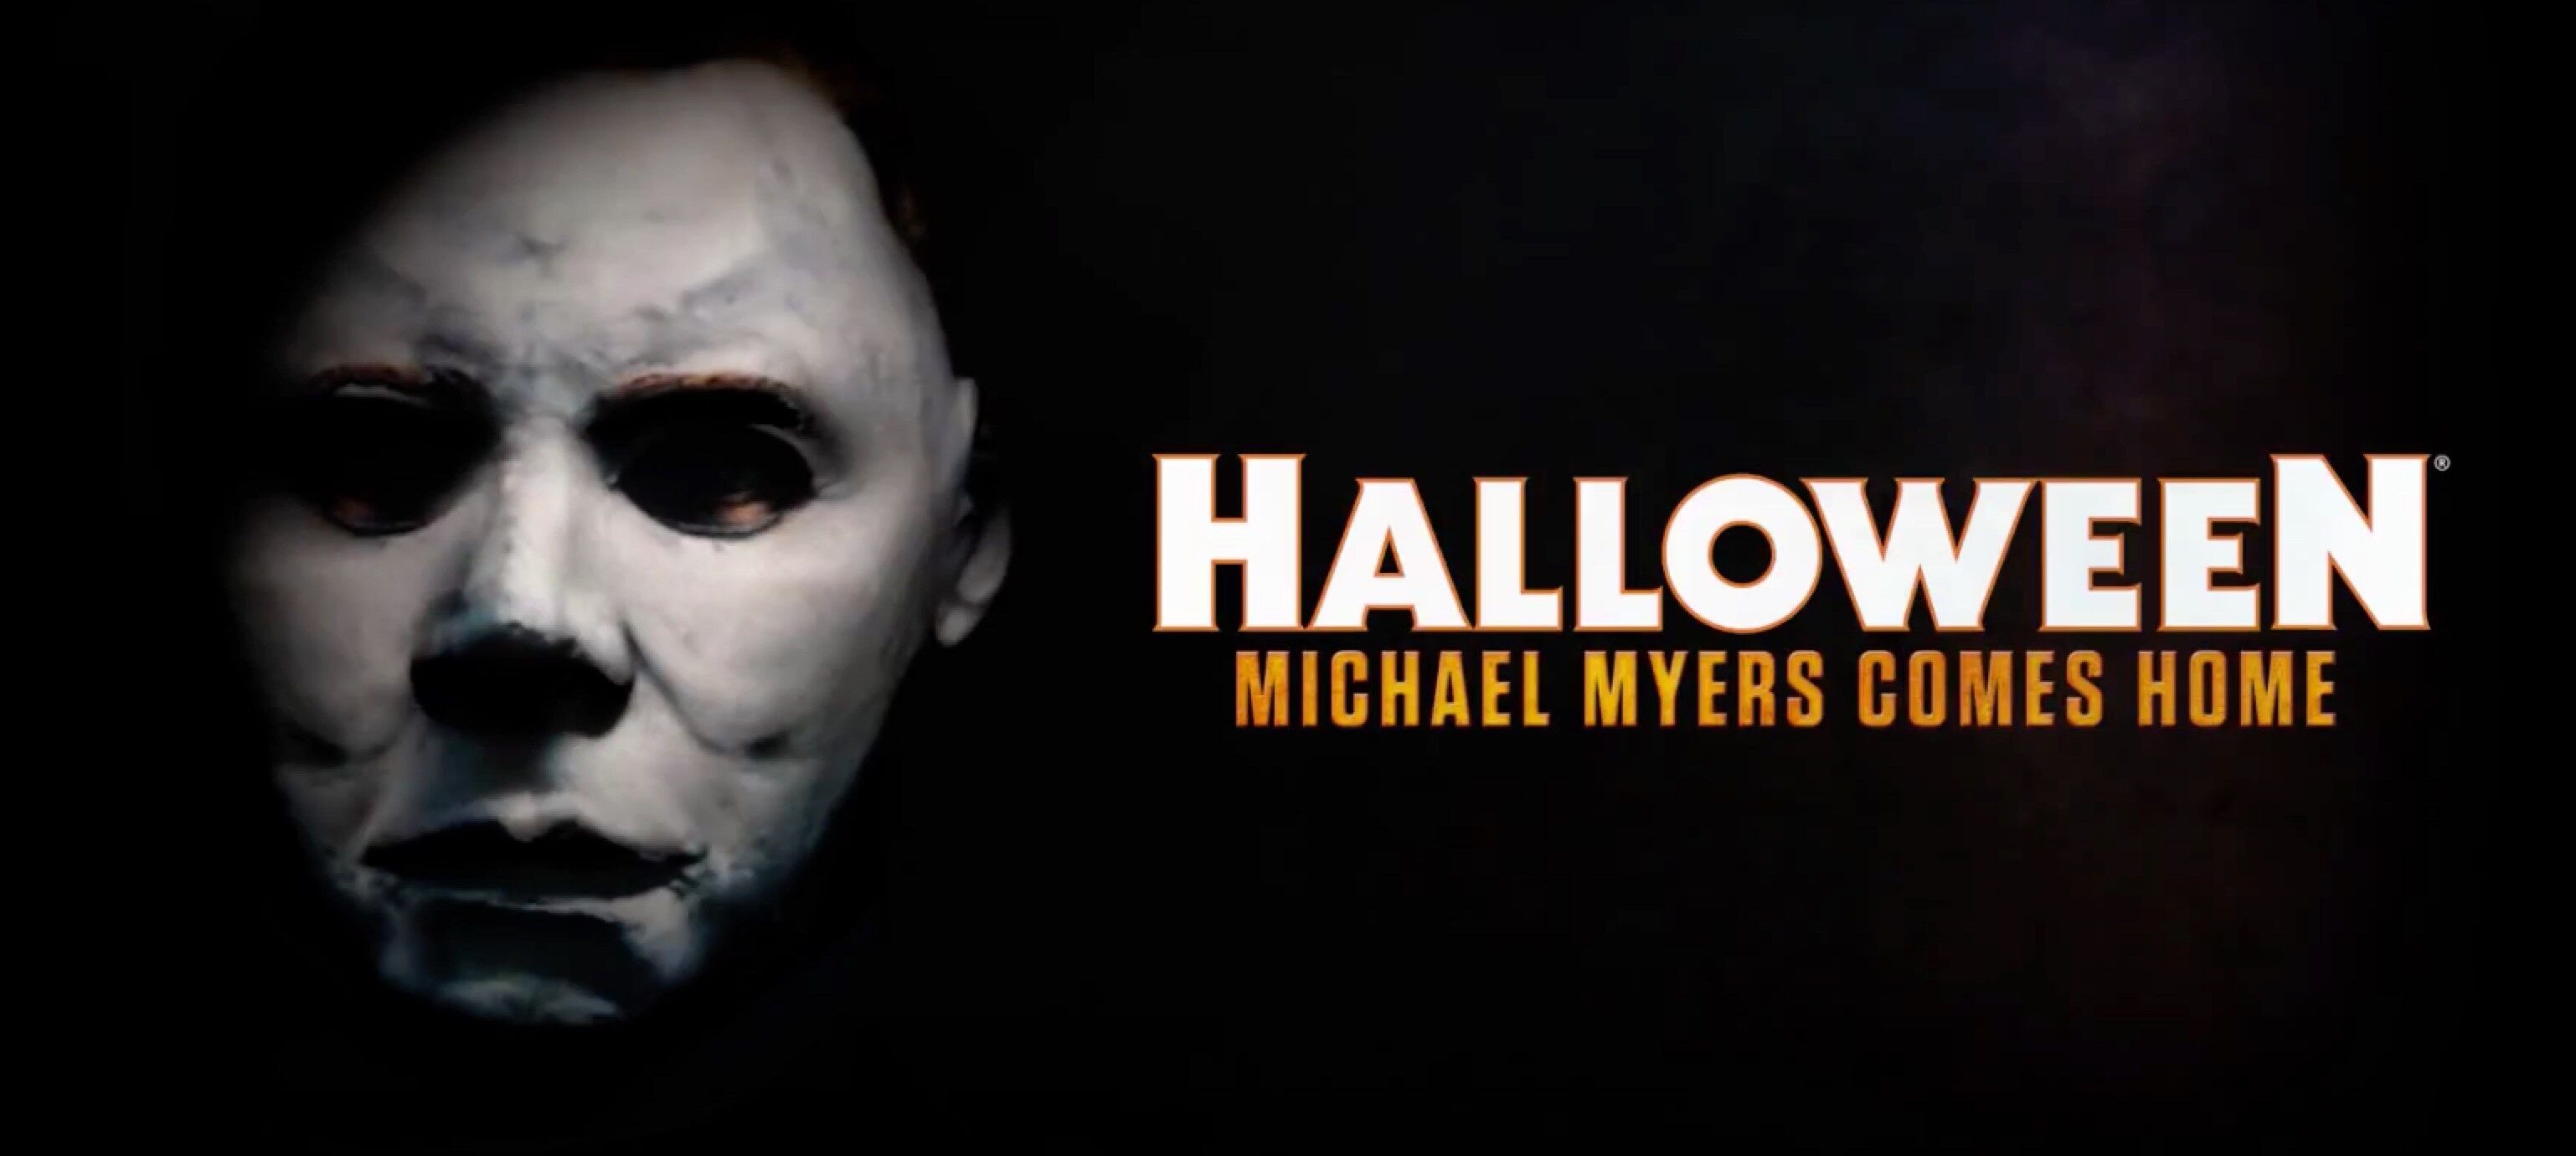 halloween 2018: wanna be in next year's michael myers film?